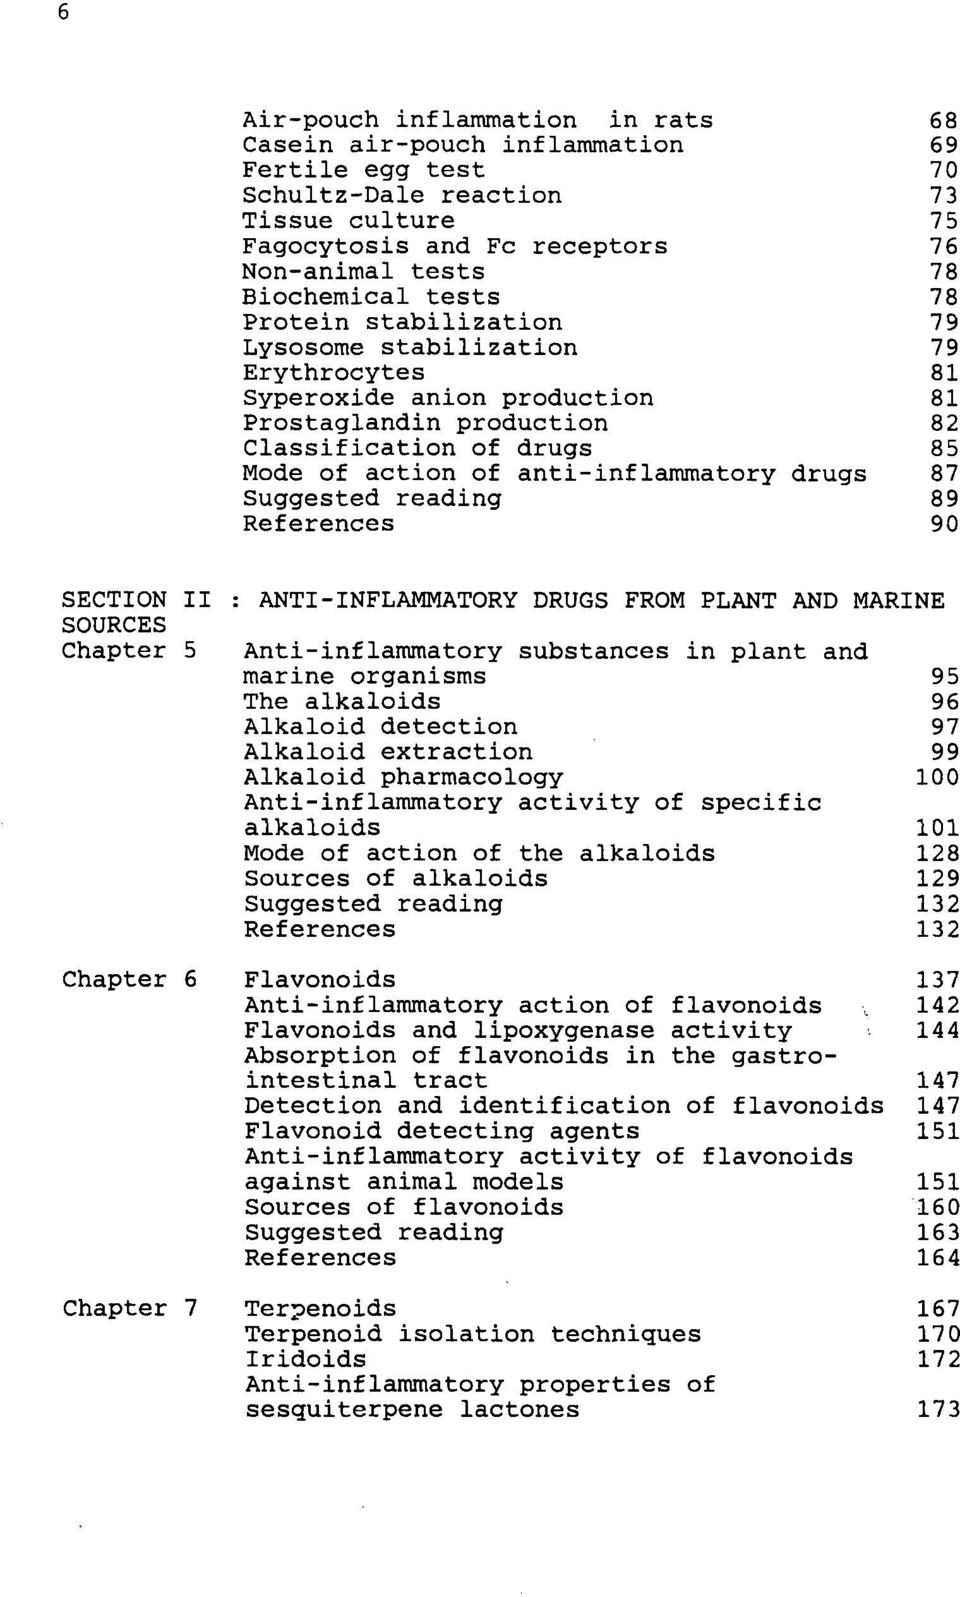 87 Suggested reading 89 References 90 SECTION II SOURCES Chapter 5 Chapter 6 Chapter 7 : ANTI-INFLAMMATORY DRUGS FROM PLANT AND MARINE Anti-inflammatory substances in plant and marine organisms 95